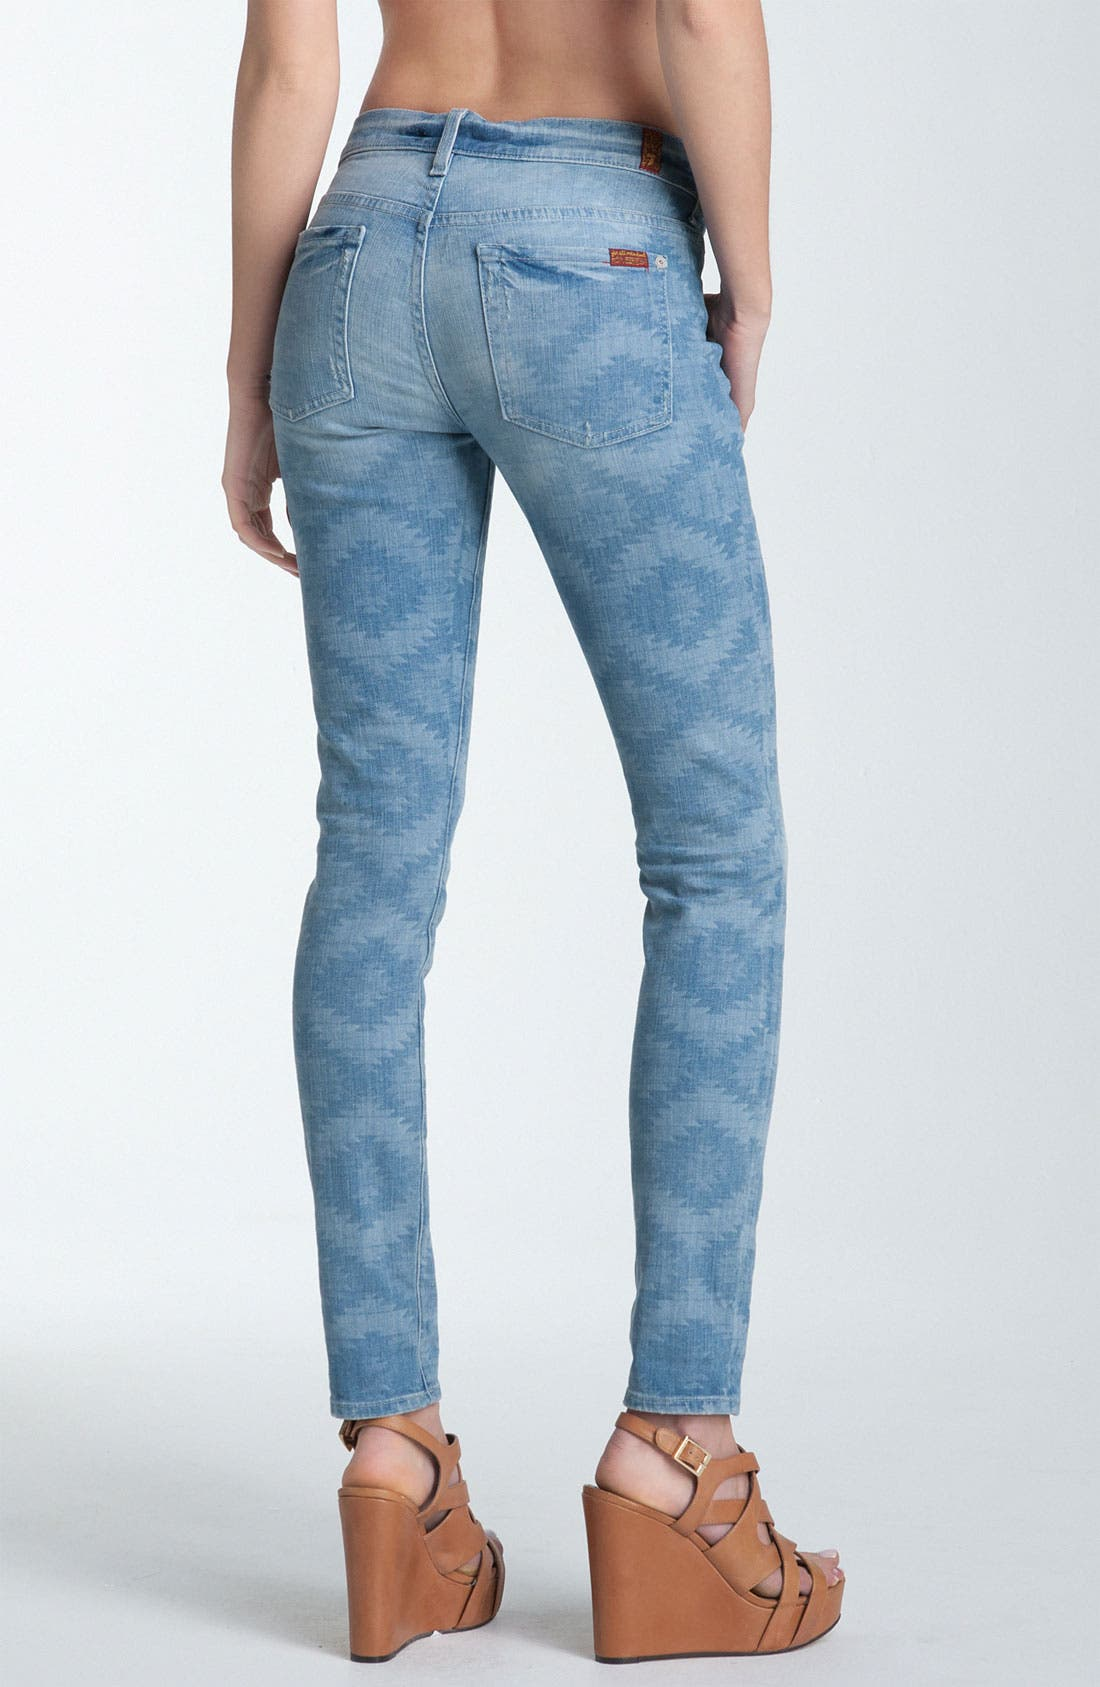 Alternate Image 1 Selected - 7 For All Mankind® 'The Skinny' Print Jeans (Ancient Pyramid Laser)